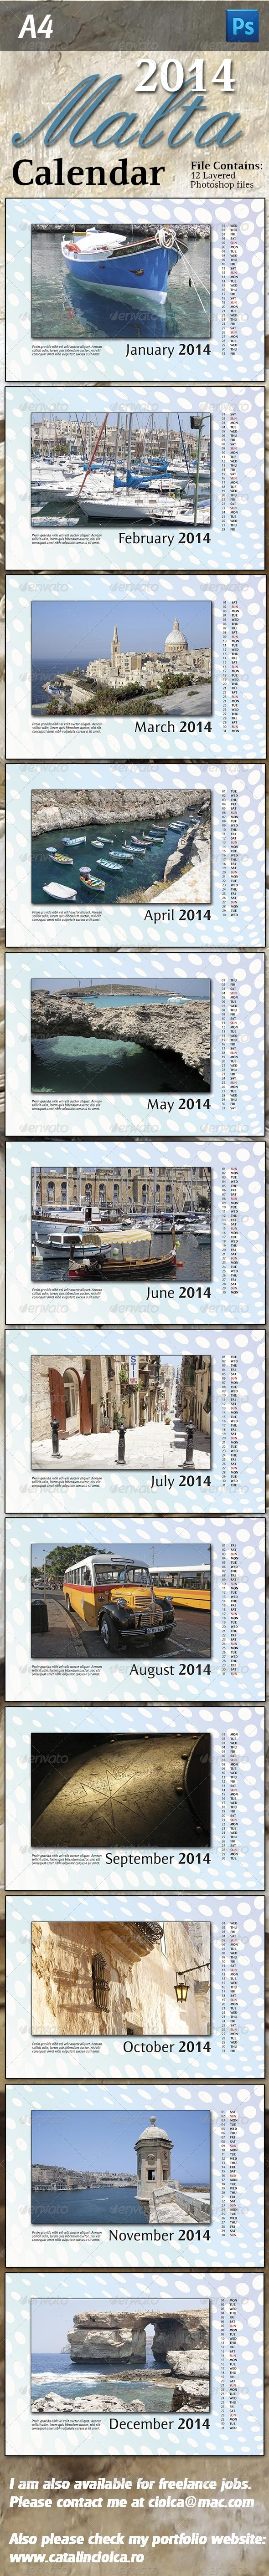 2014 Malta Images Calendar - Miscellaneous Print Templates